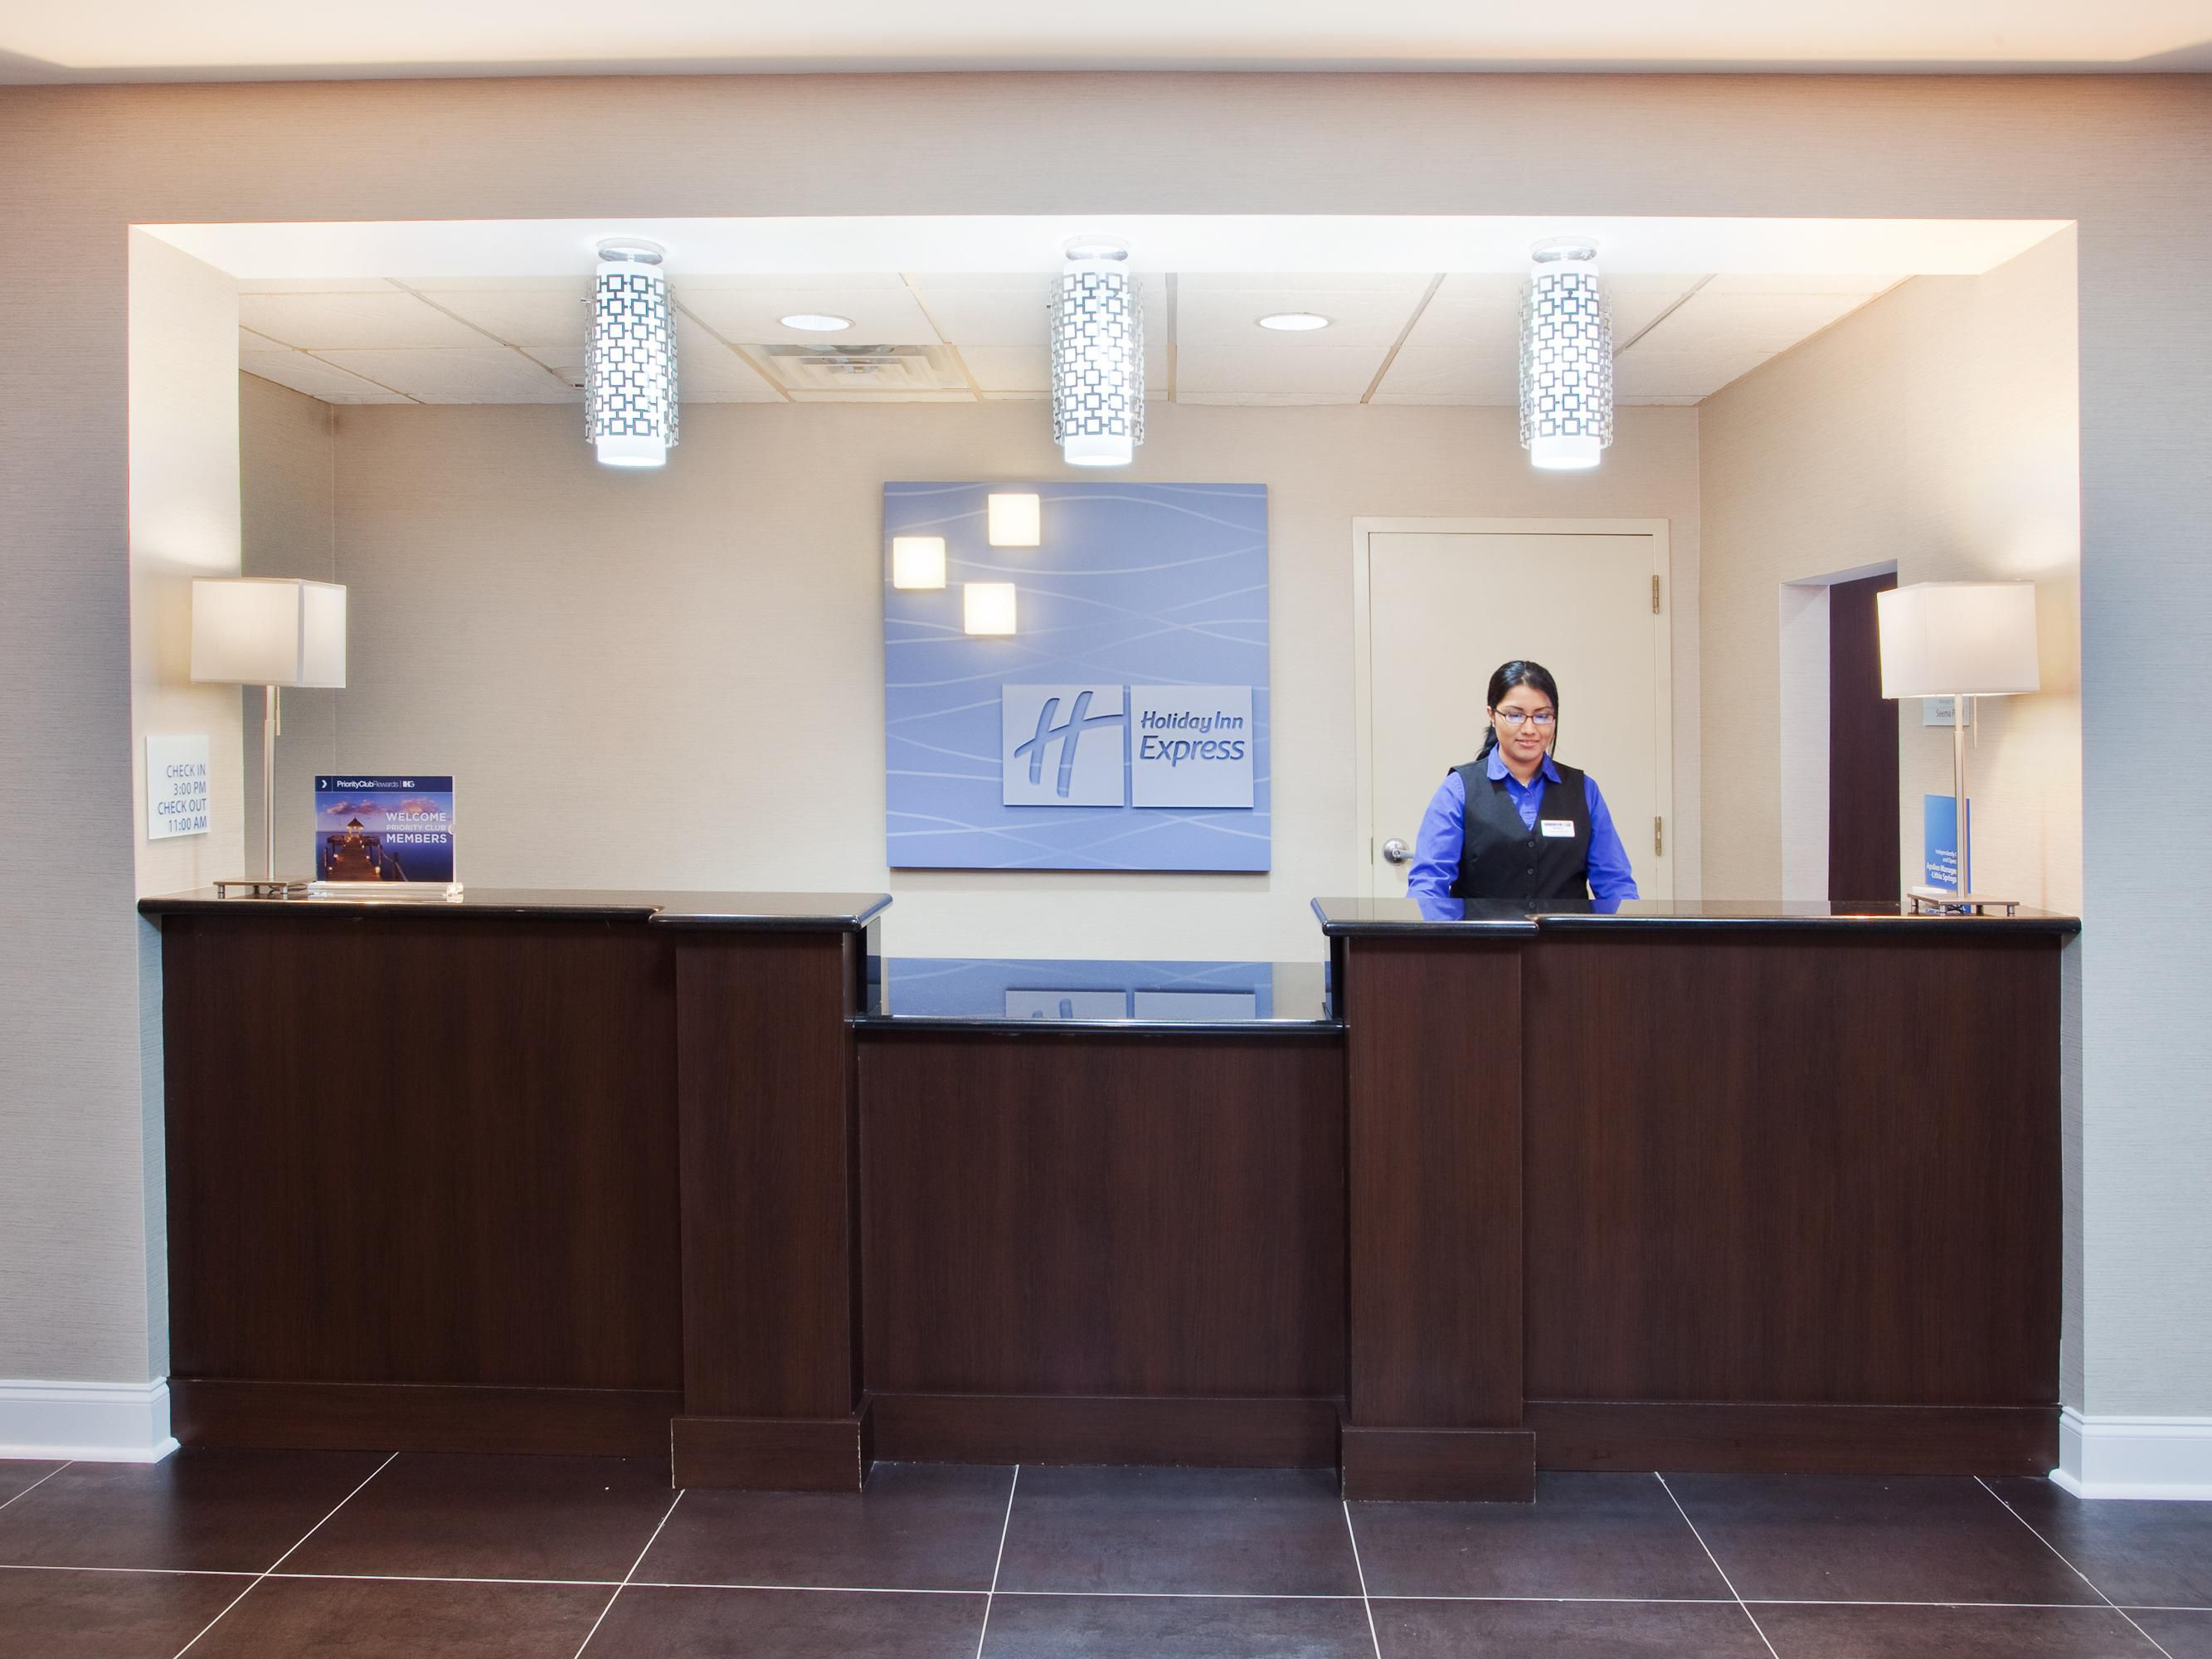 Welcome To Your Holiday Inn Express Hotel Near Six Flags